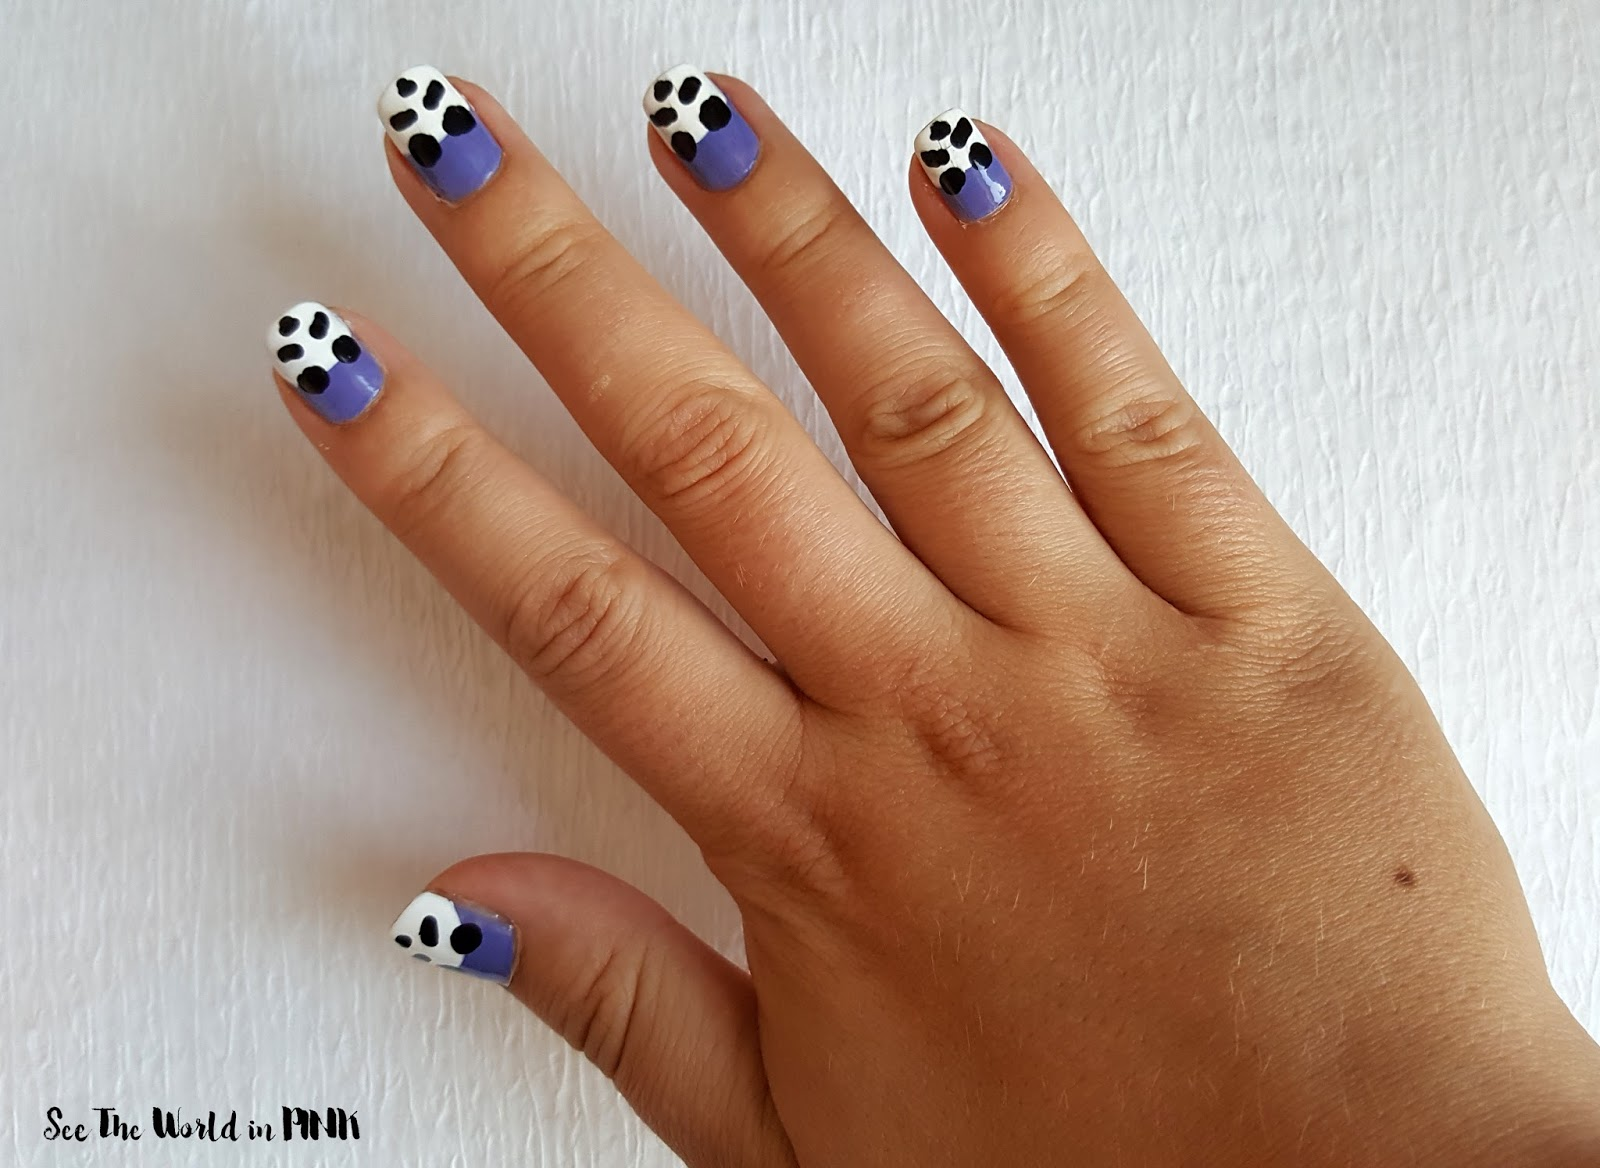 Manicure Tuesday - Panda Nail Art!